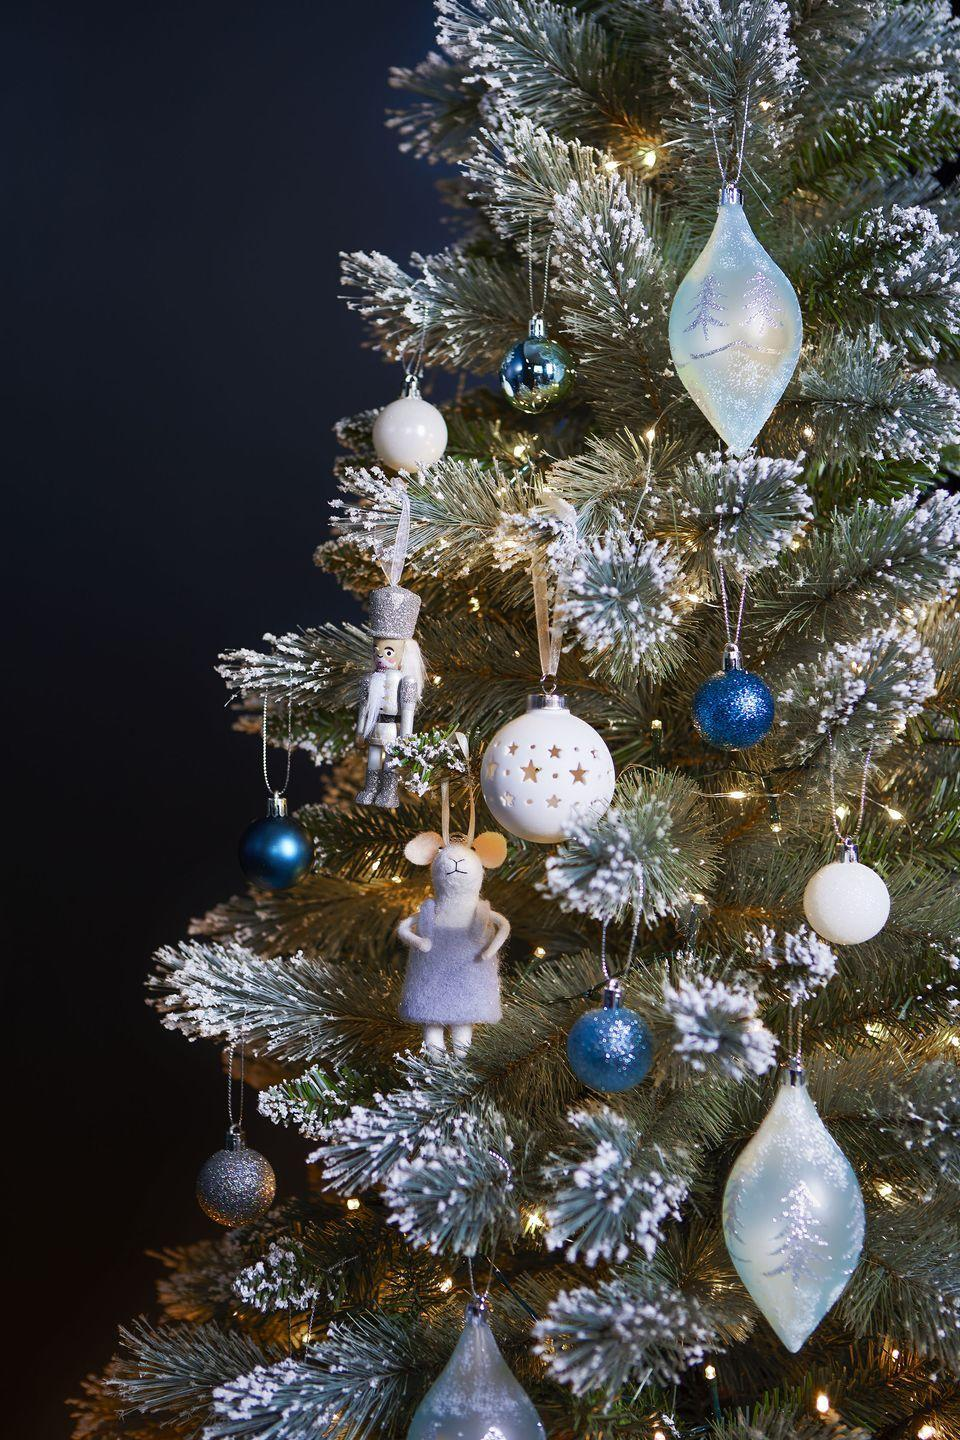 """<p>As part of their Nordic Blues trend, this range has hues of blue and silver to give your <a href=""""https://www.housebeautiful.com/uk/decorate/a34844572/easy-decorate-christmas-tree-free/"""" rel=""""nofollow noopener"""" target=""""_blank"""" data-ylk=""""slk:Christmas tree"""" class=""""link rapid-noclick-resp"""">Christmas tree</a> a fresh feel. From olive-shaped light blue baubles (£3) to their famous mouse figurine (£3.50), there's something for every home. </p><p>'Taking inspiration from the icy glaciers of Scandinavia, the Nordic Blues trend features a cool colour palette together with sparkling finishes, to bring a touch of elegance into the home,' say Tesco. </p>"""